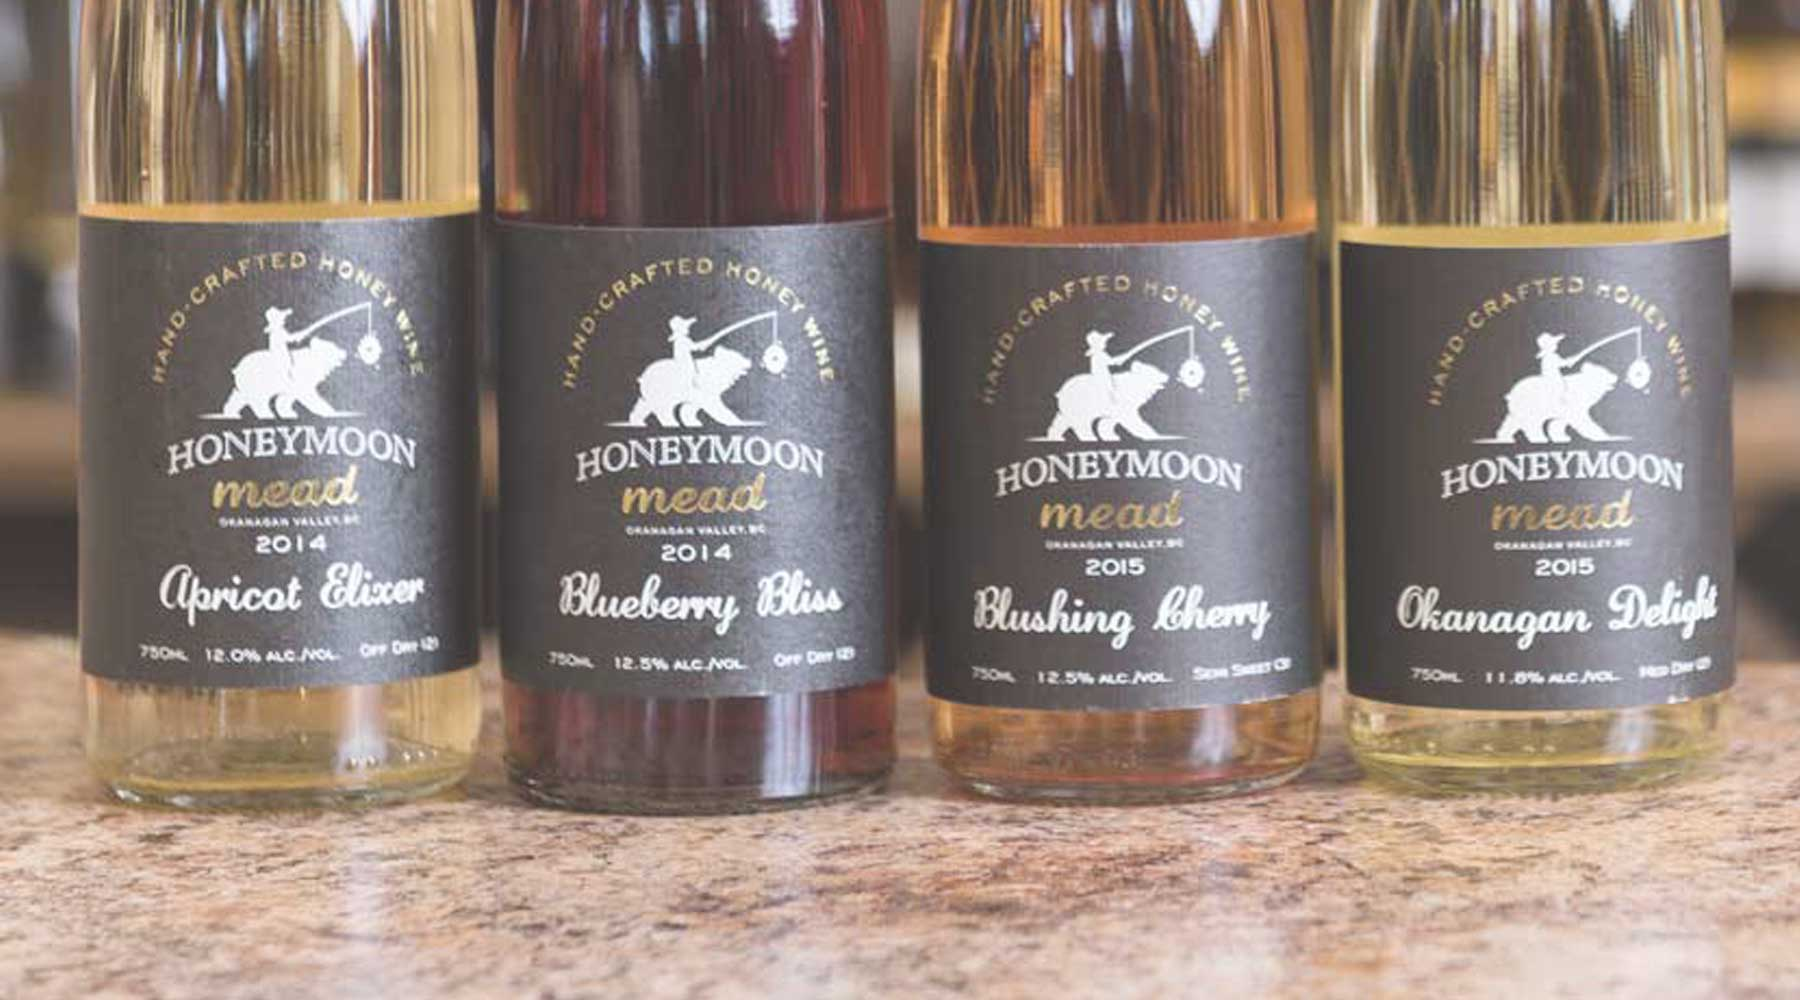 Honeymoon Meadery at Planet Bee | Just Wine